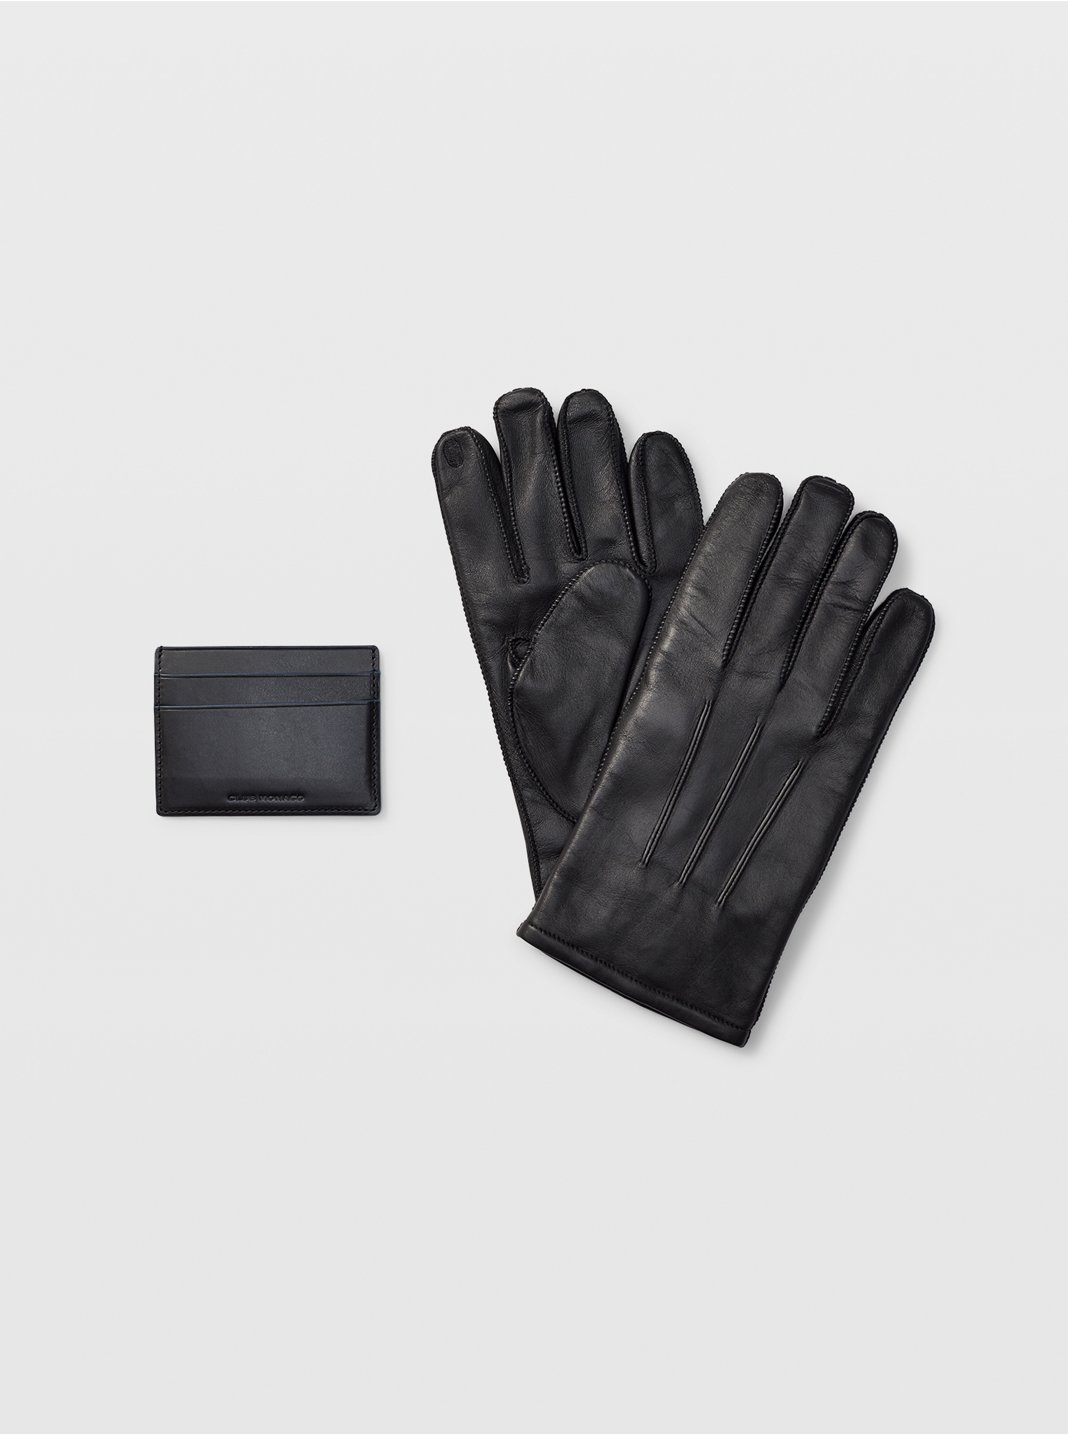 The Leather Goods Set